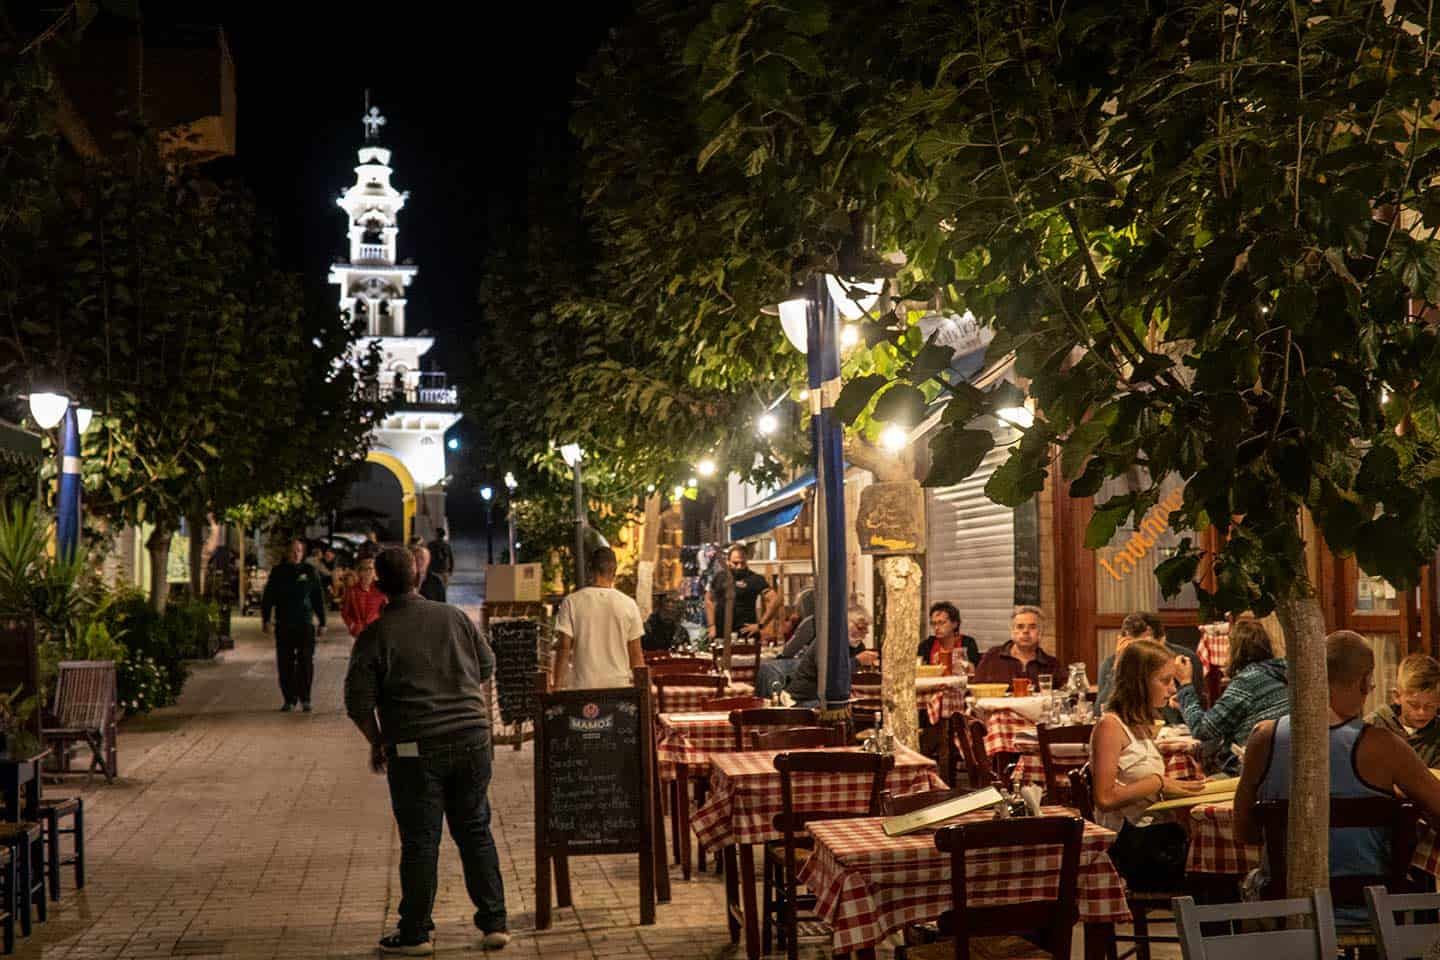 Image of outdoor cafes in the square in Paleochora Crete